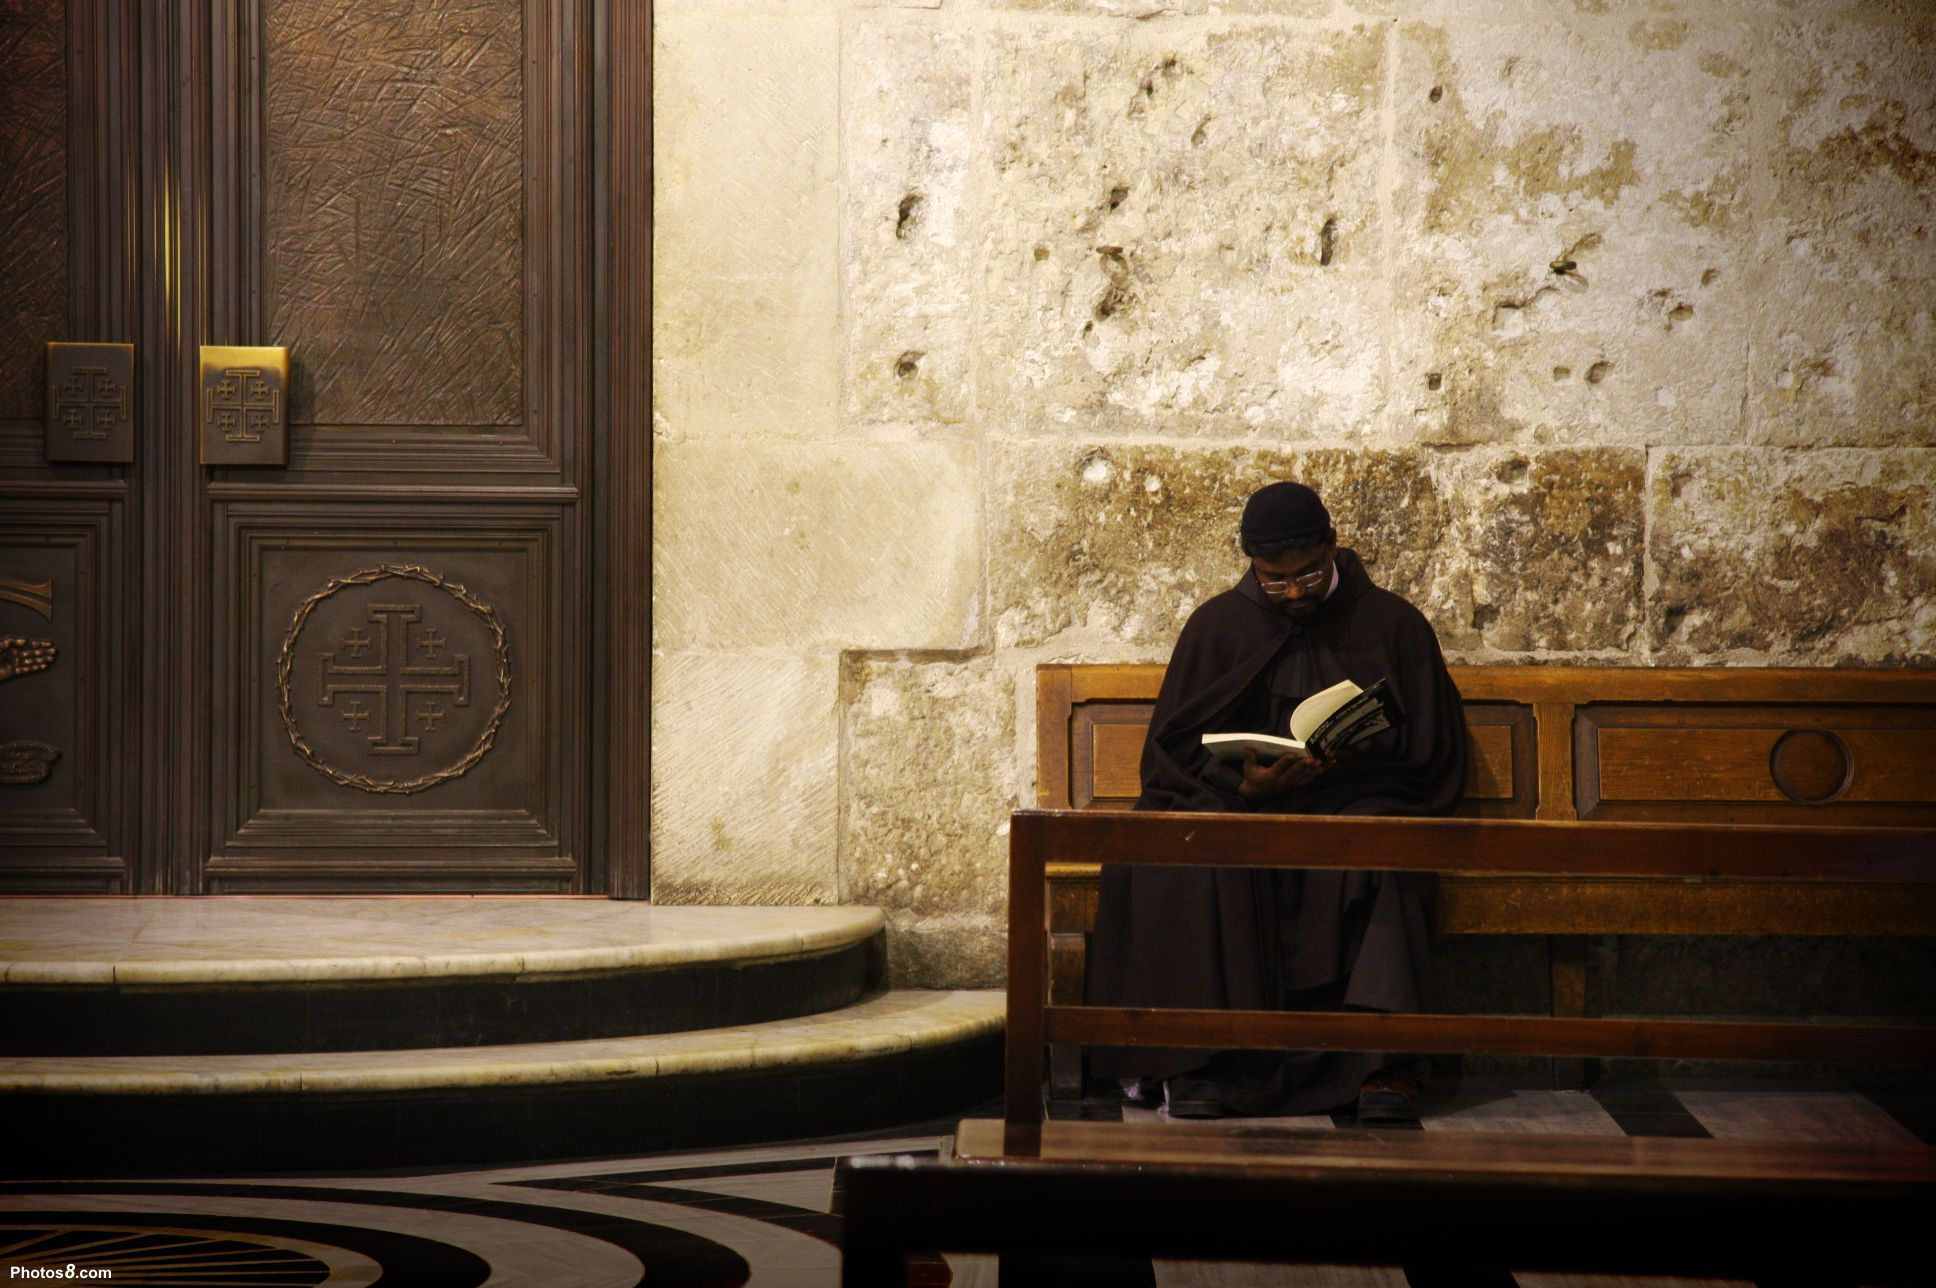 Roman Catholic Monk Other Hello All Looking For HD Wallpaper General 1936x1288